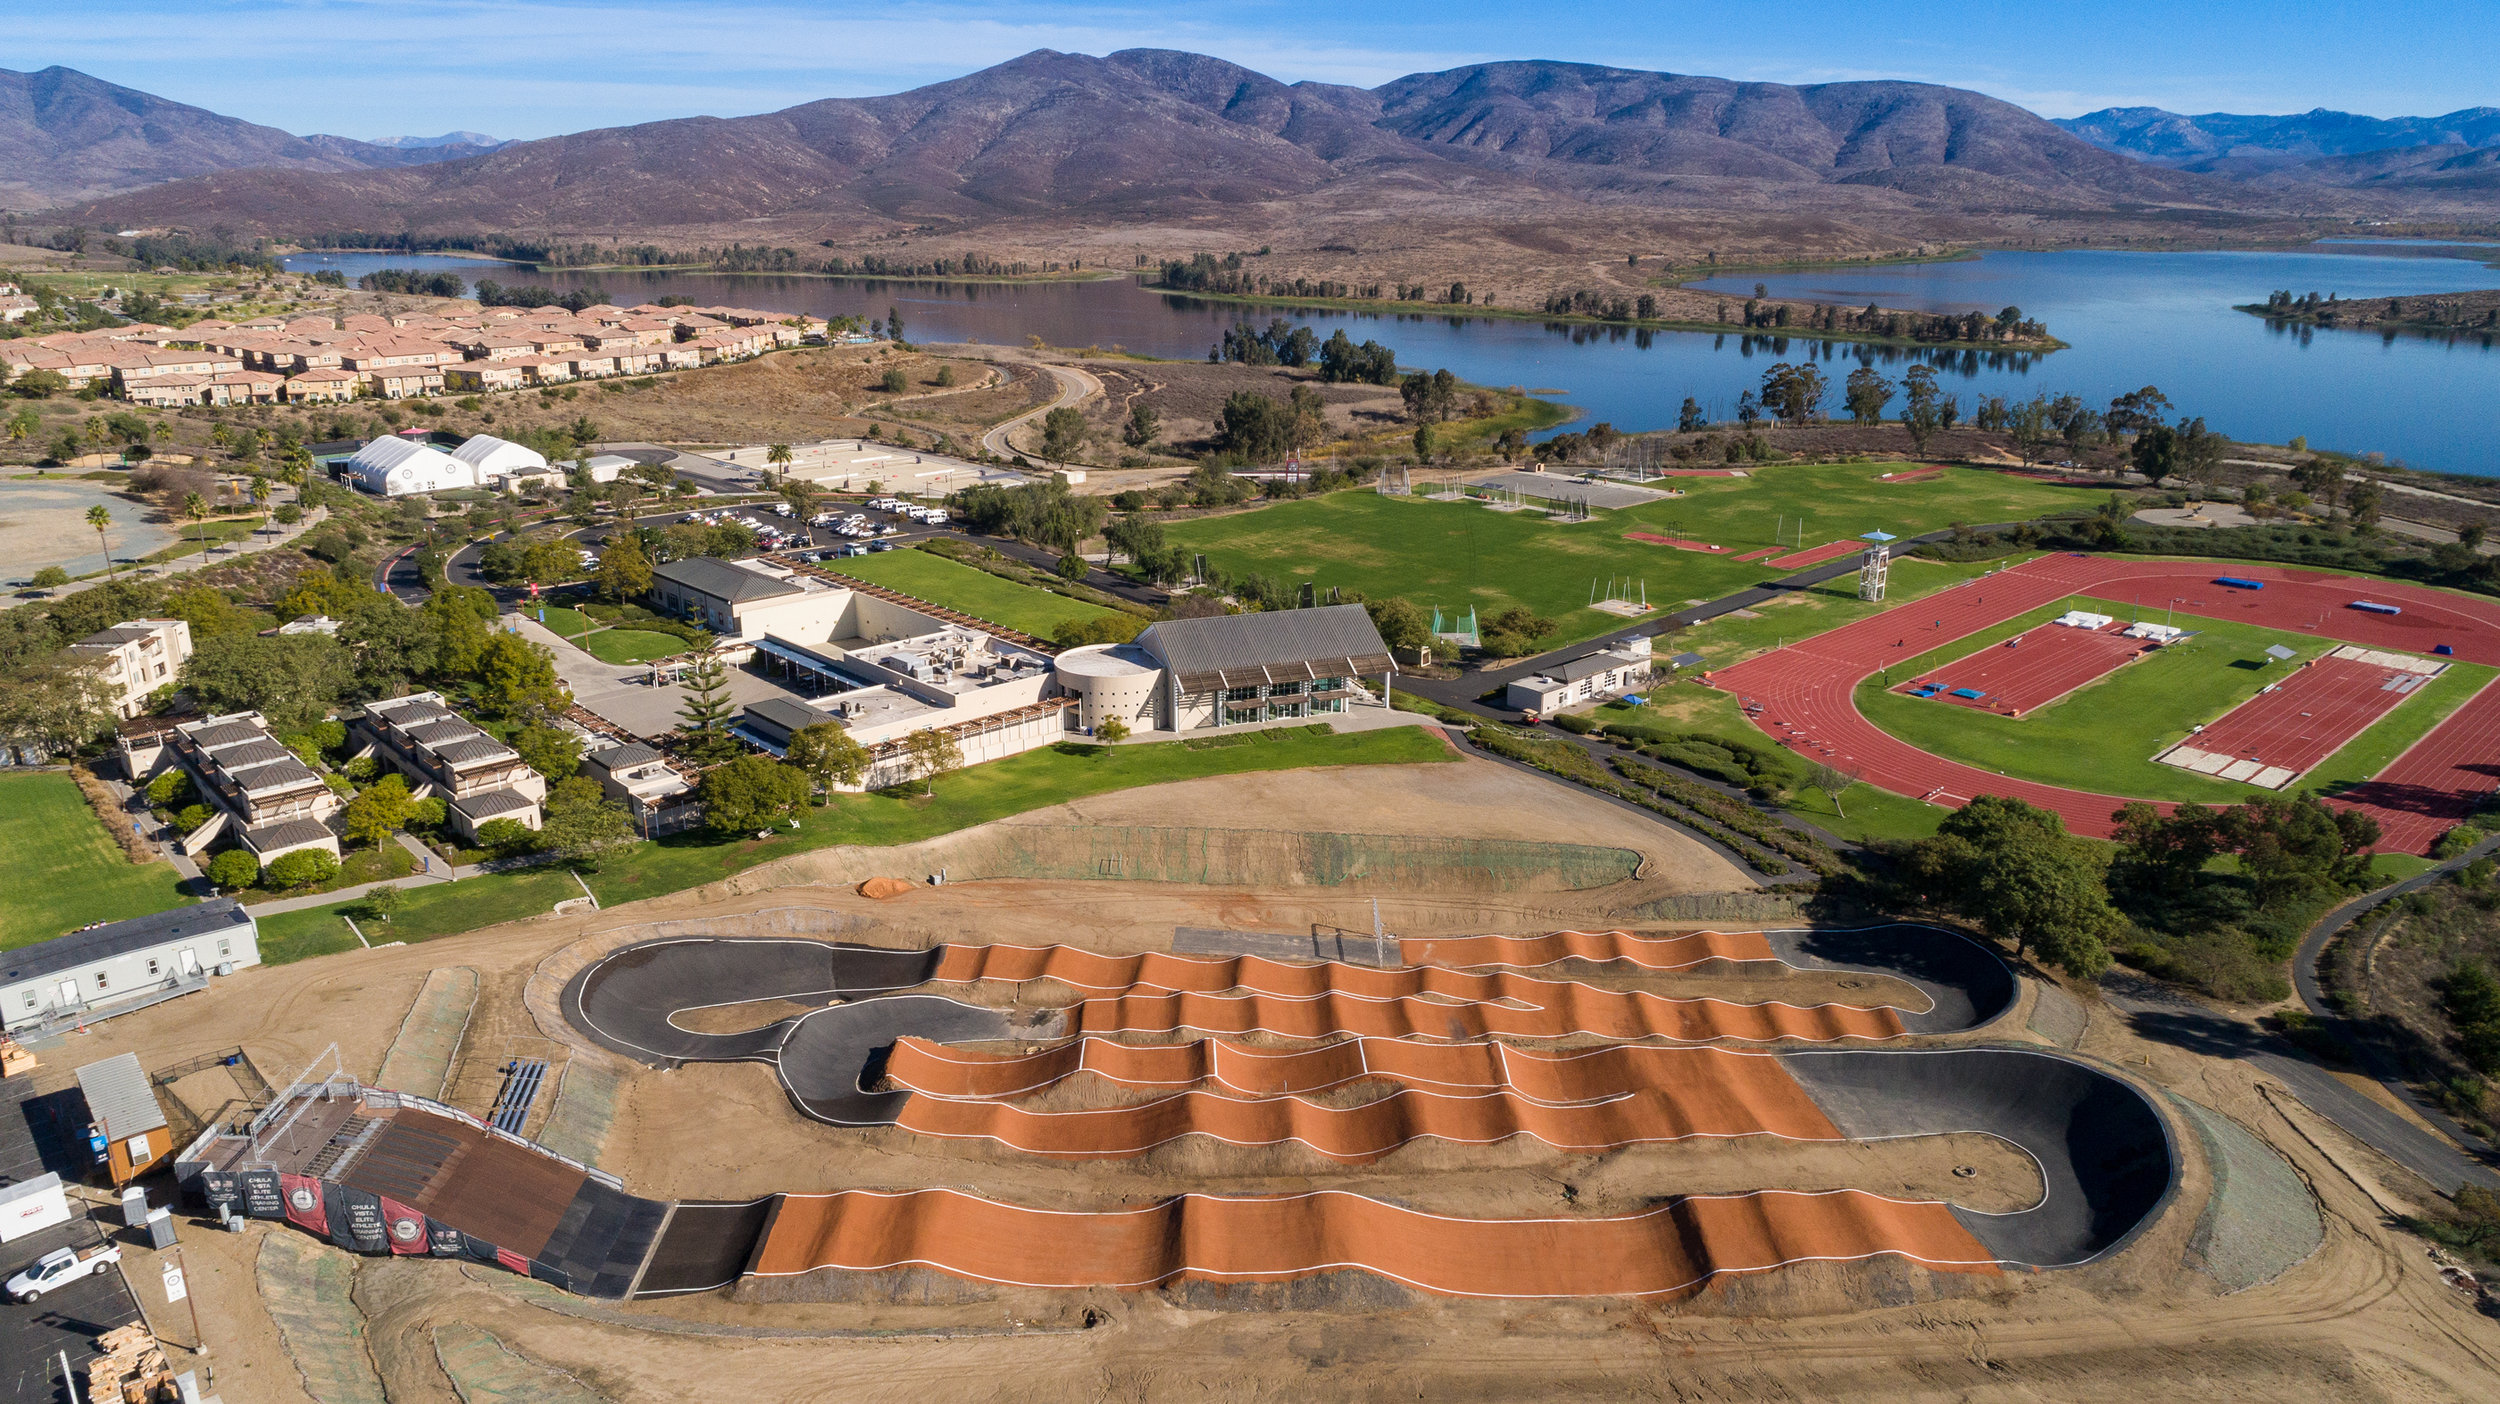 The Chula Vista Elite Athlete Training Center, emil kara, architectural photographer, san diego